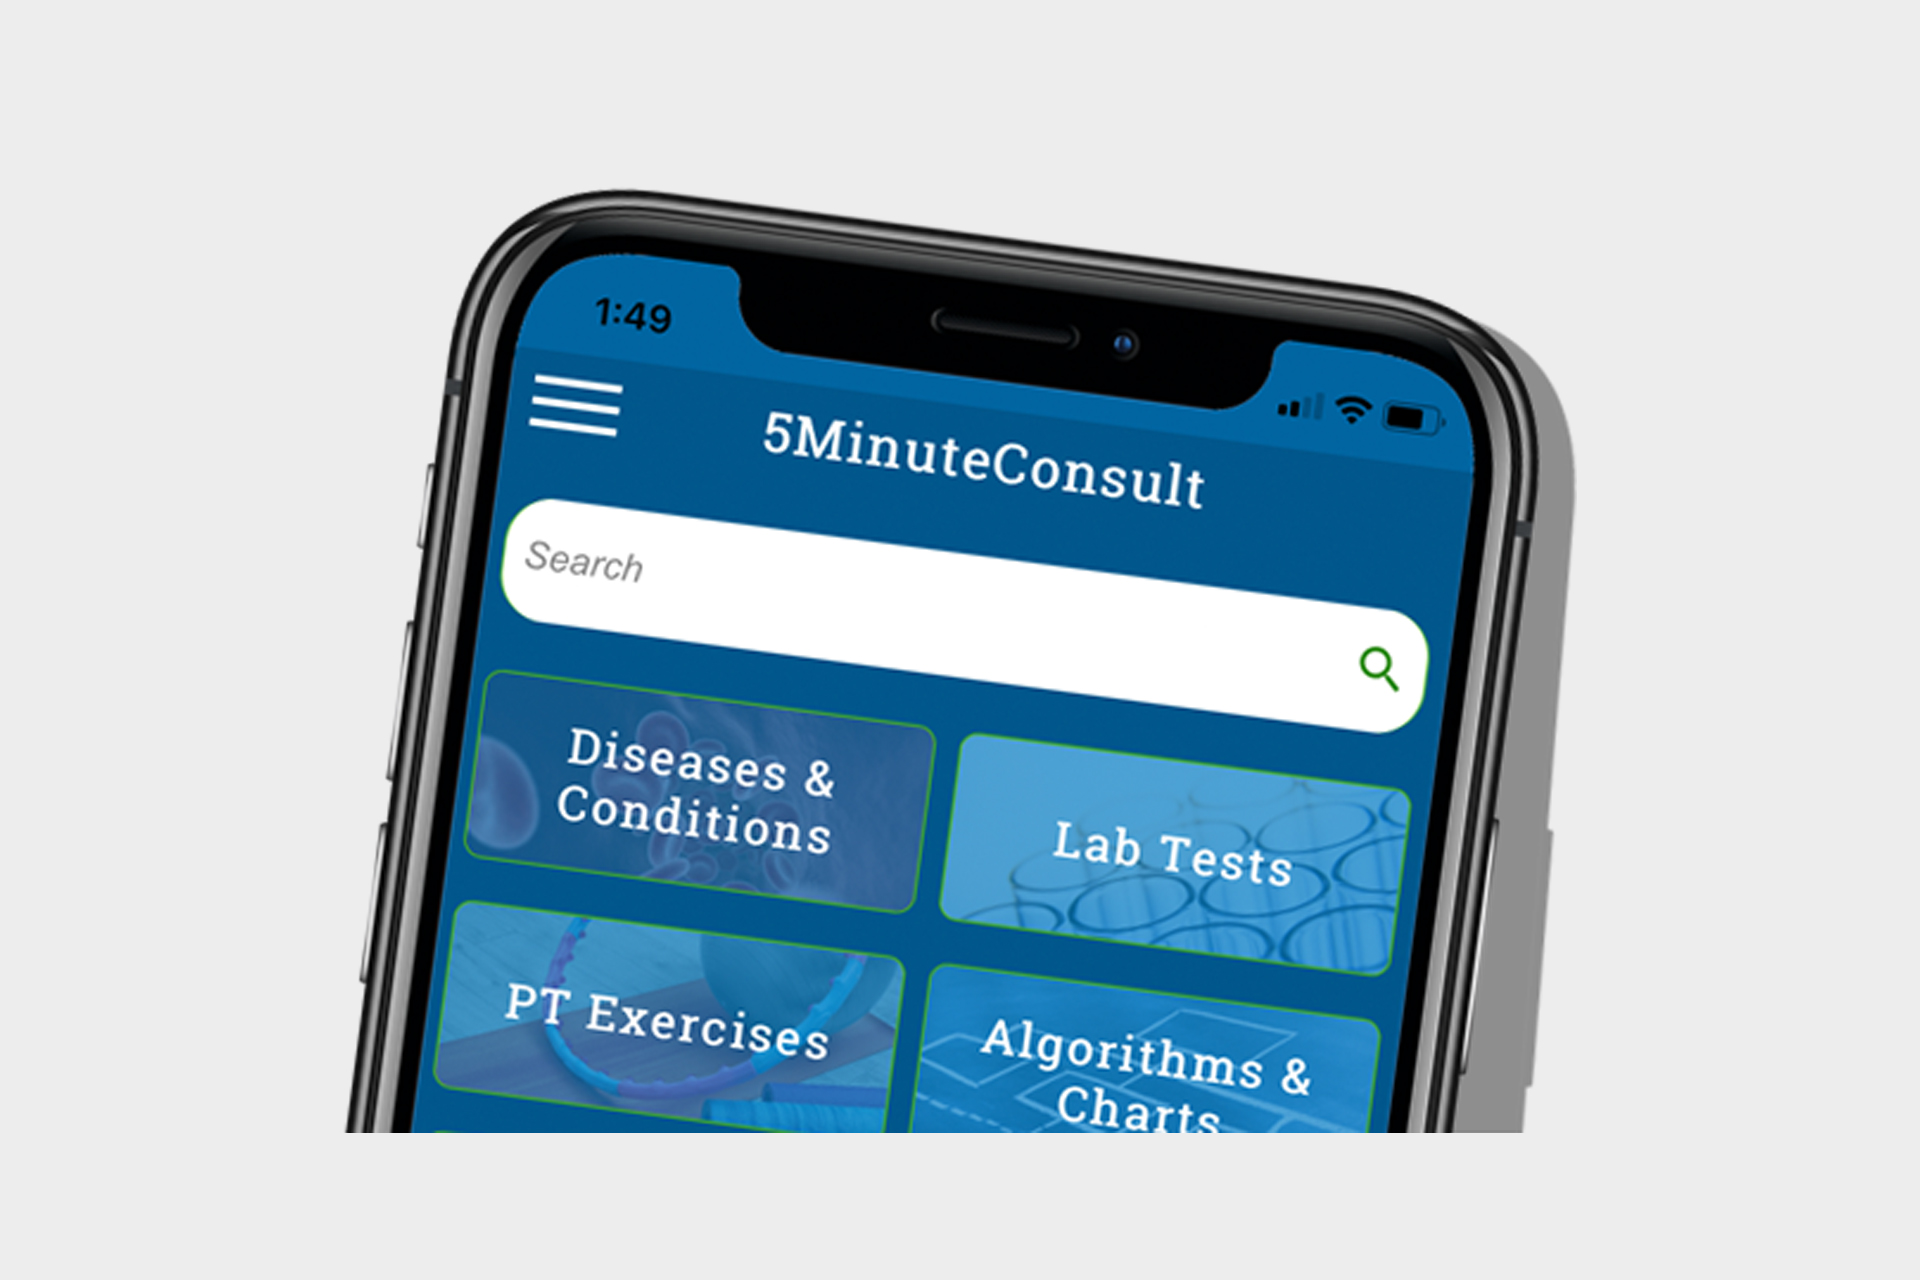 Screenshot of 5MinuteConsult on a smartphone